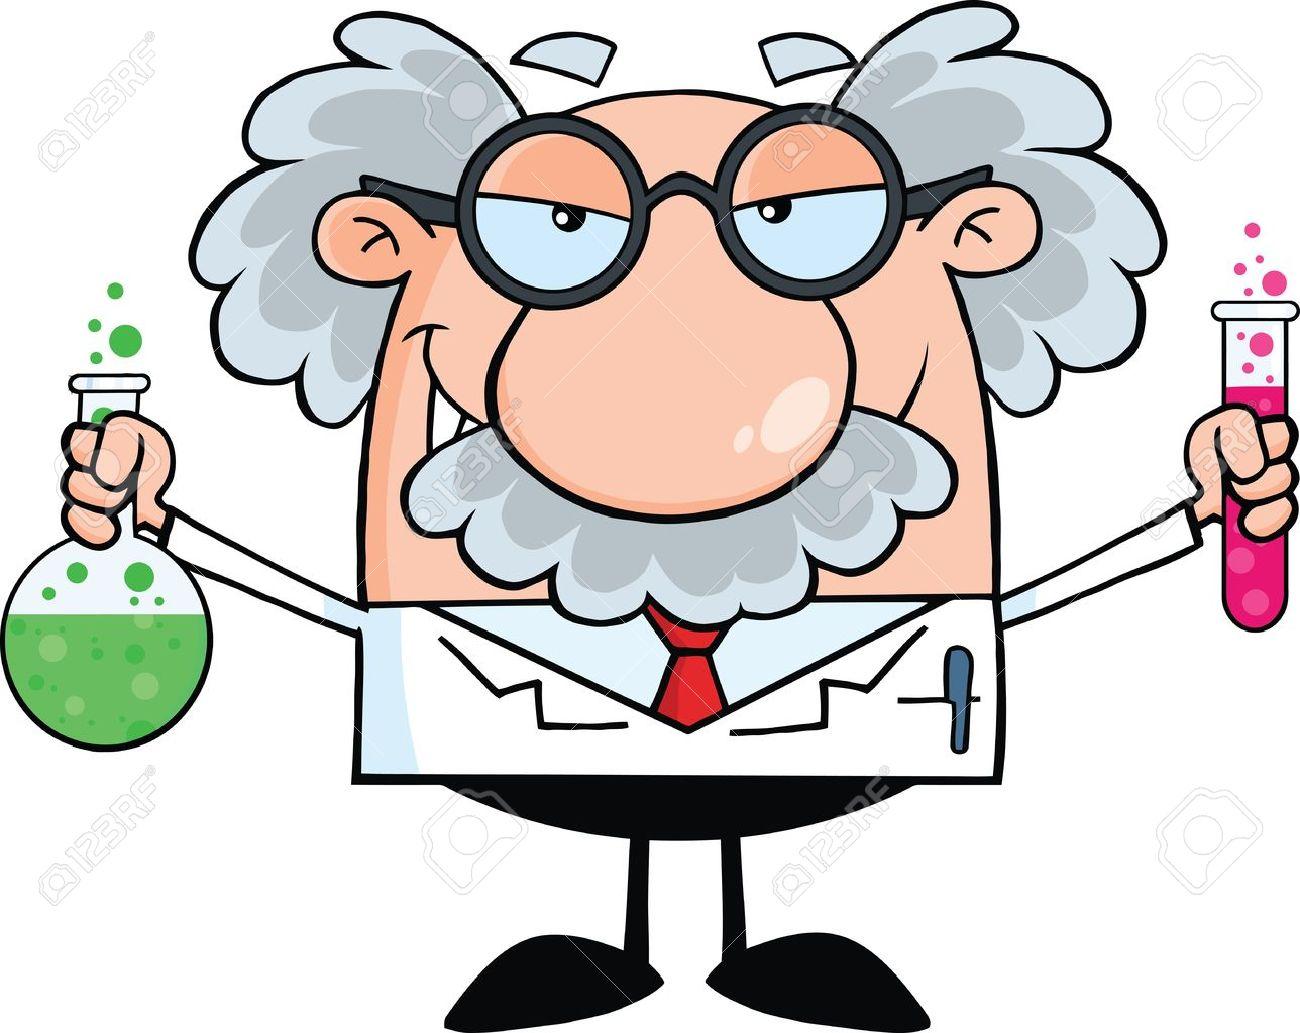 Pics photos clip art cartoon scientist with question mark stock - Genius Mad Scientist Or Professor Holding A Bottle And Flask With Fluids